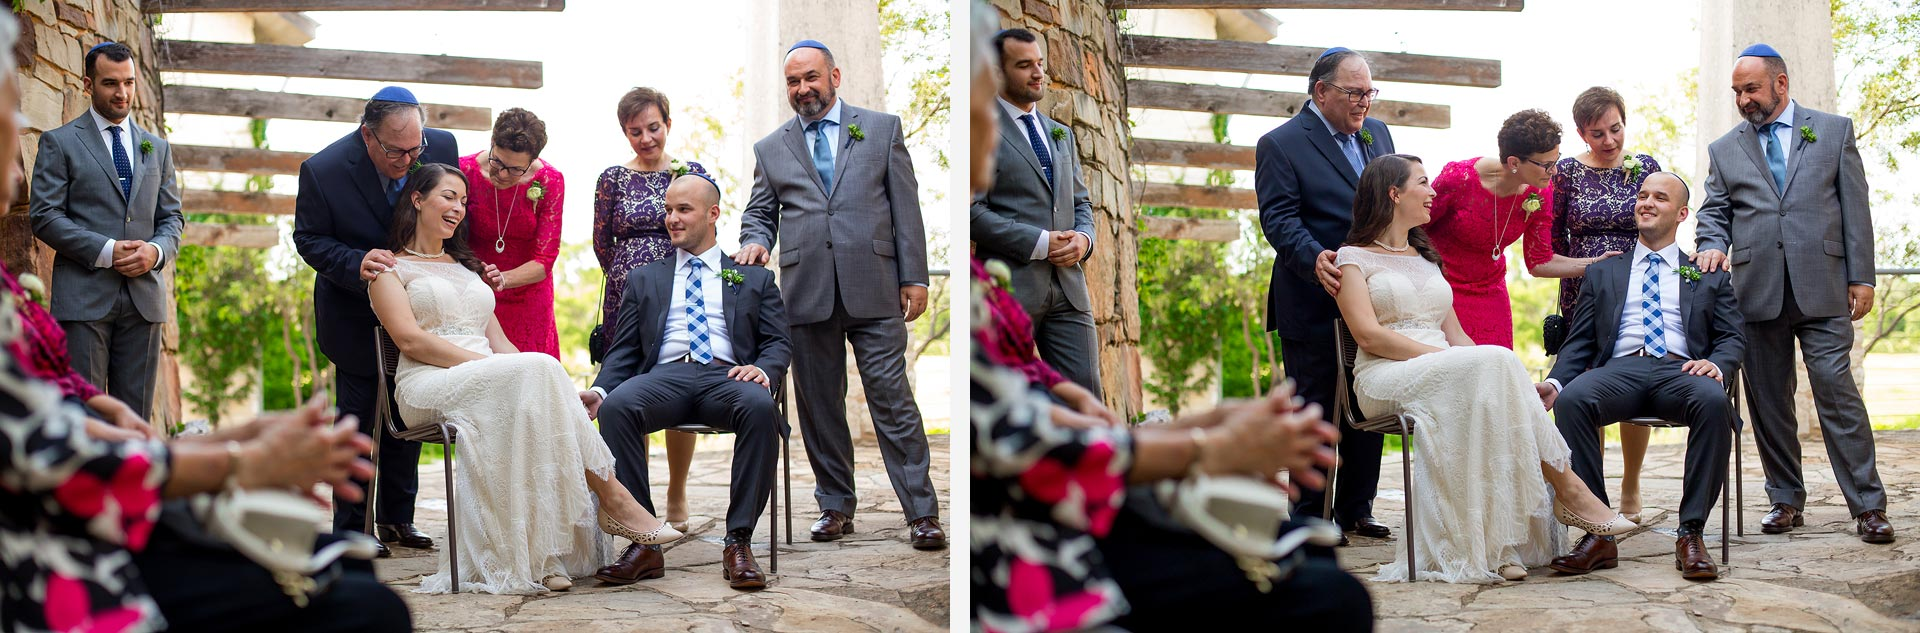 Austin Jewish Wedding Photography